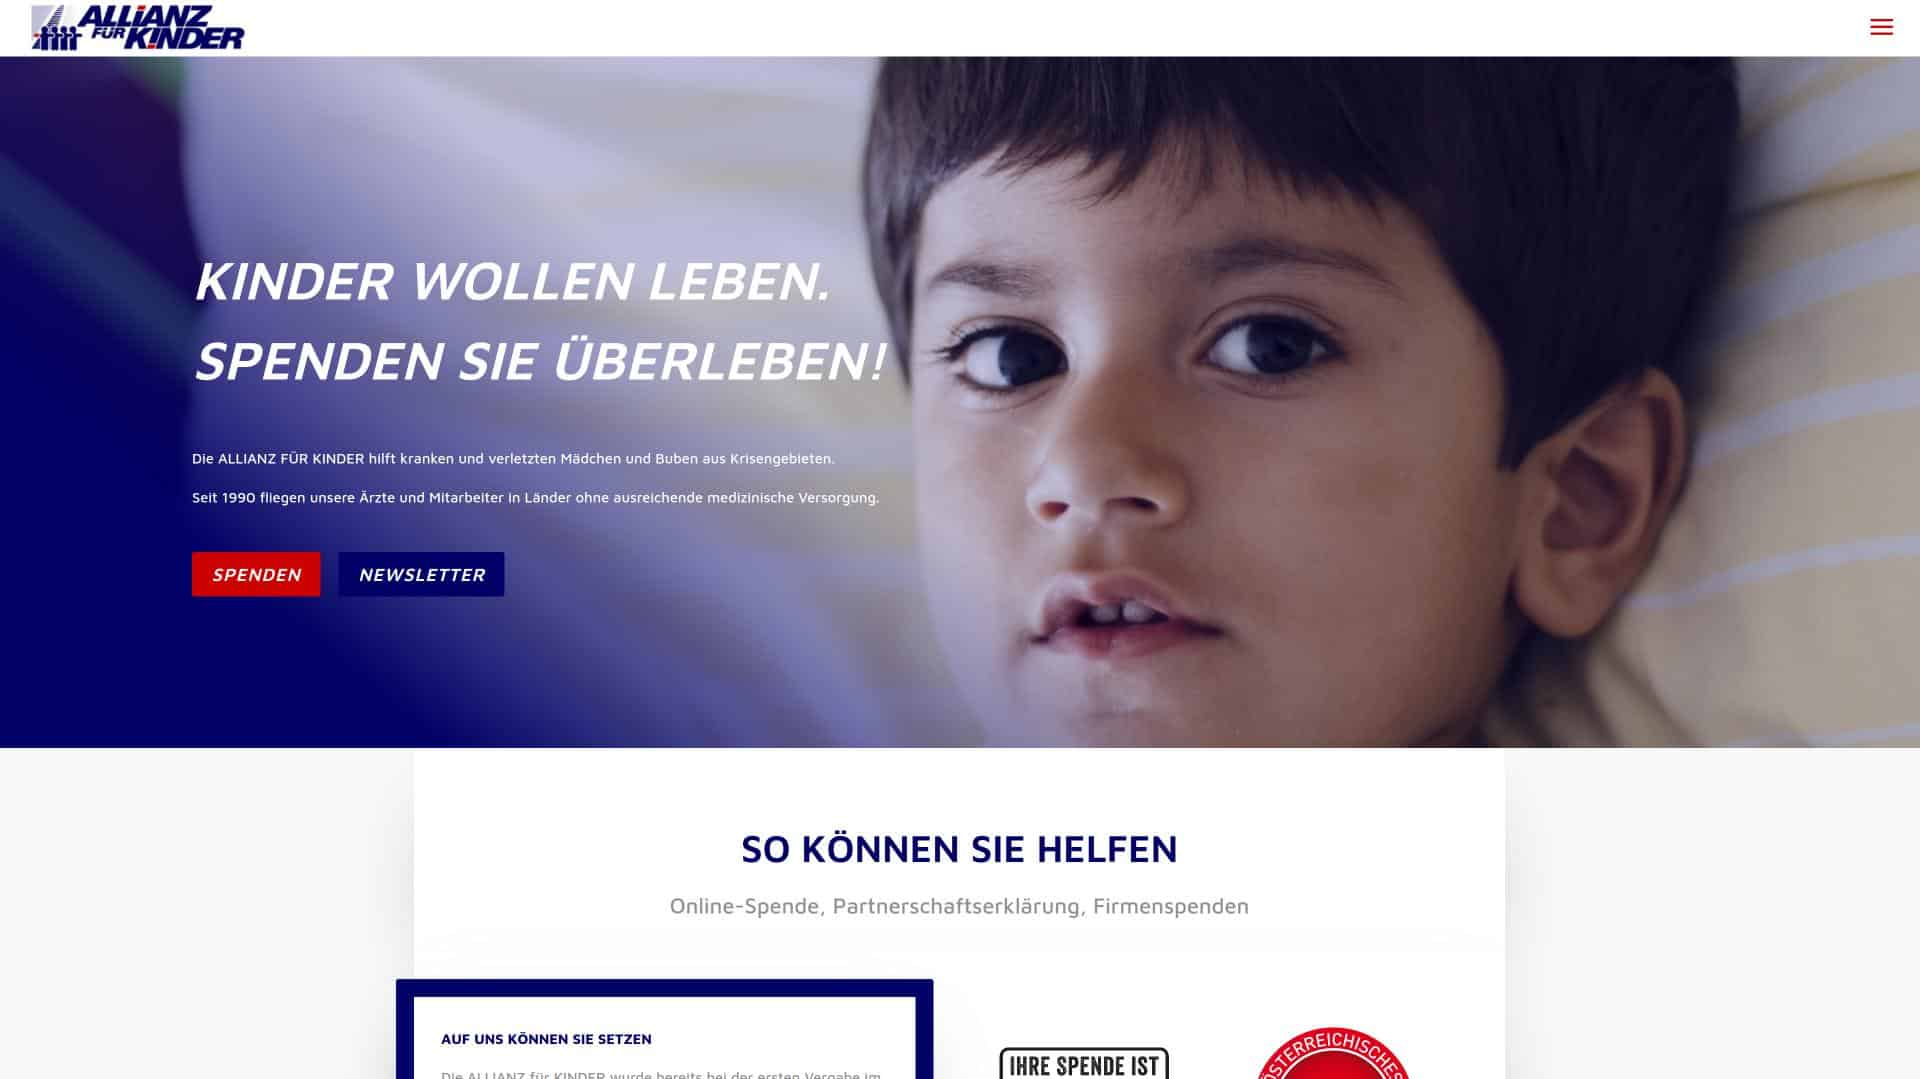 https://allianz-fuer-kinder.at